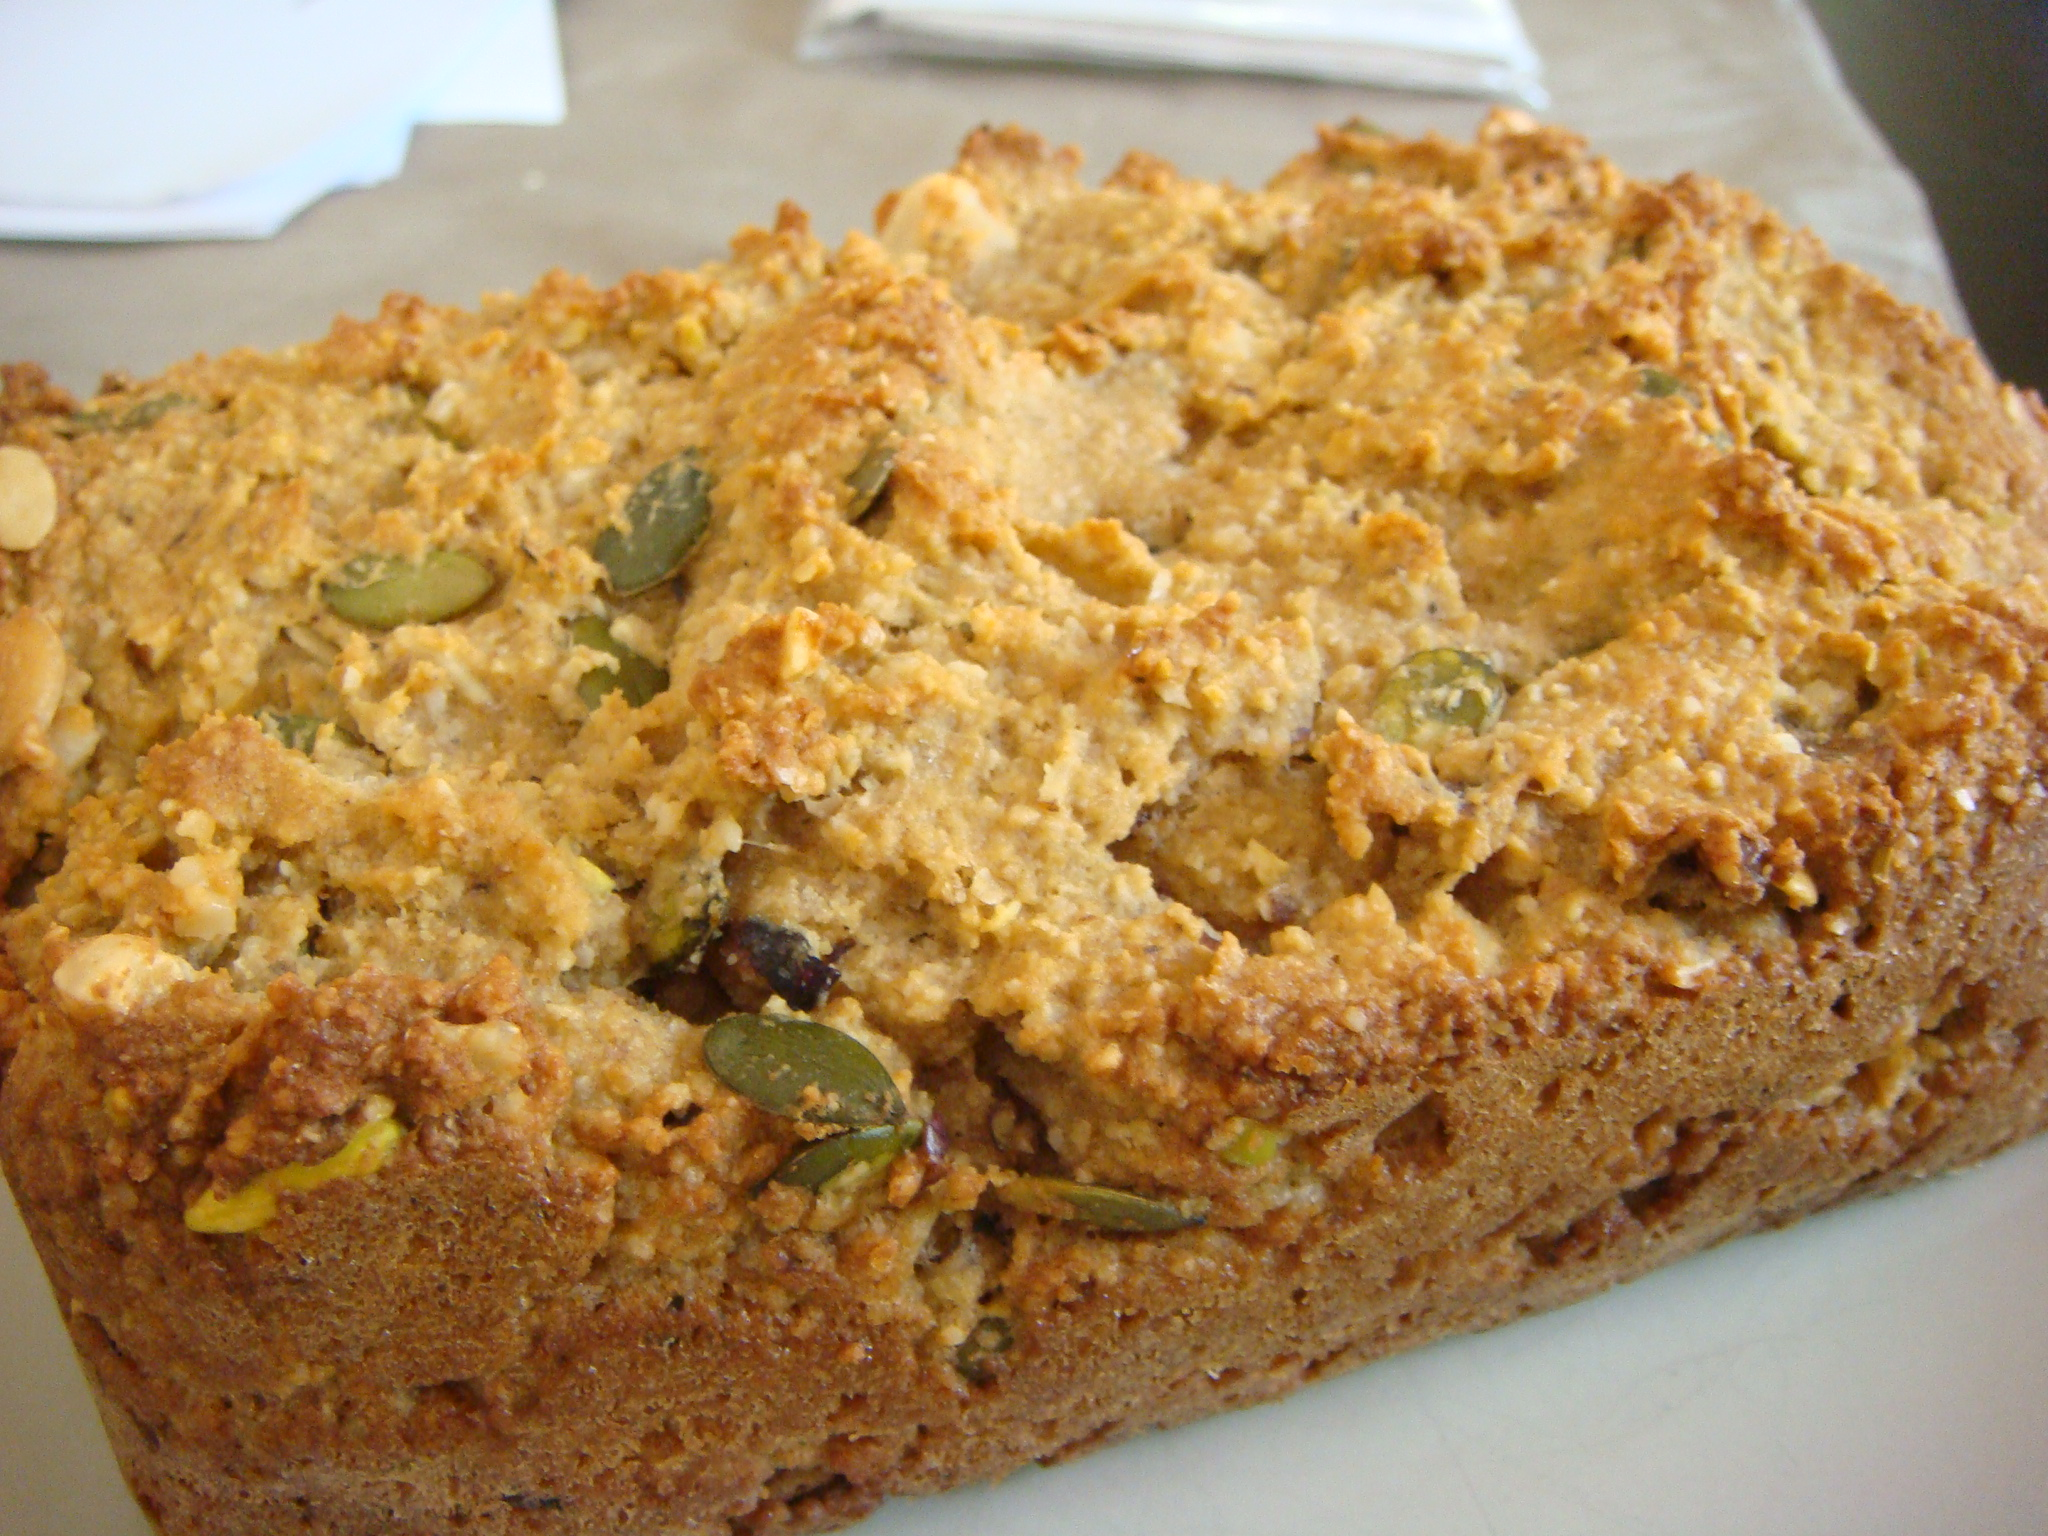 Nutty gluten free bread